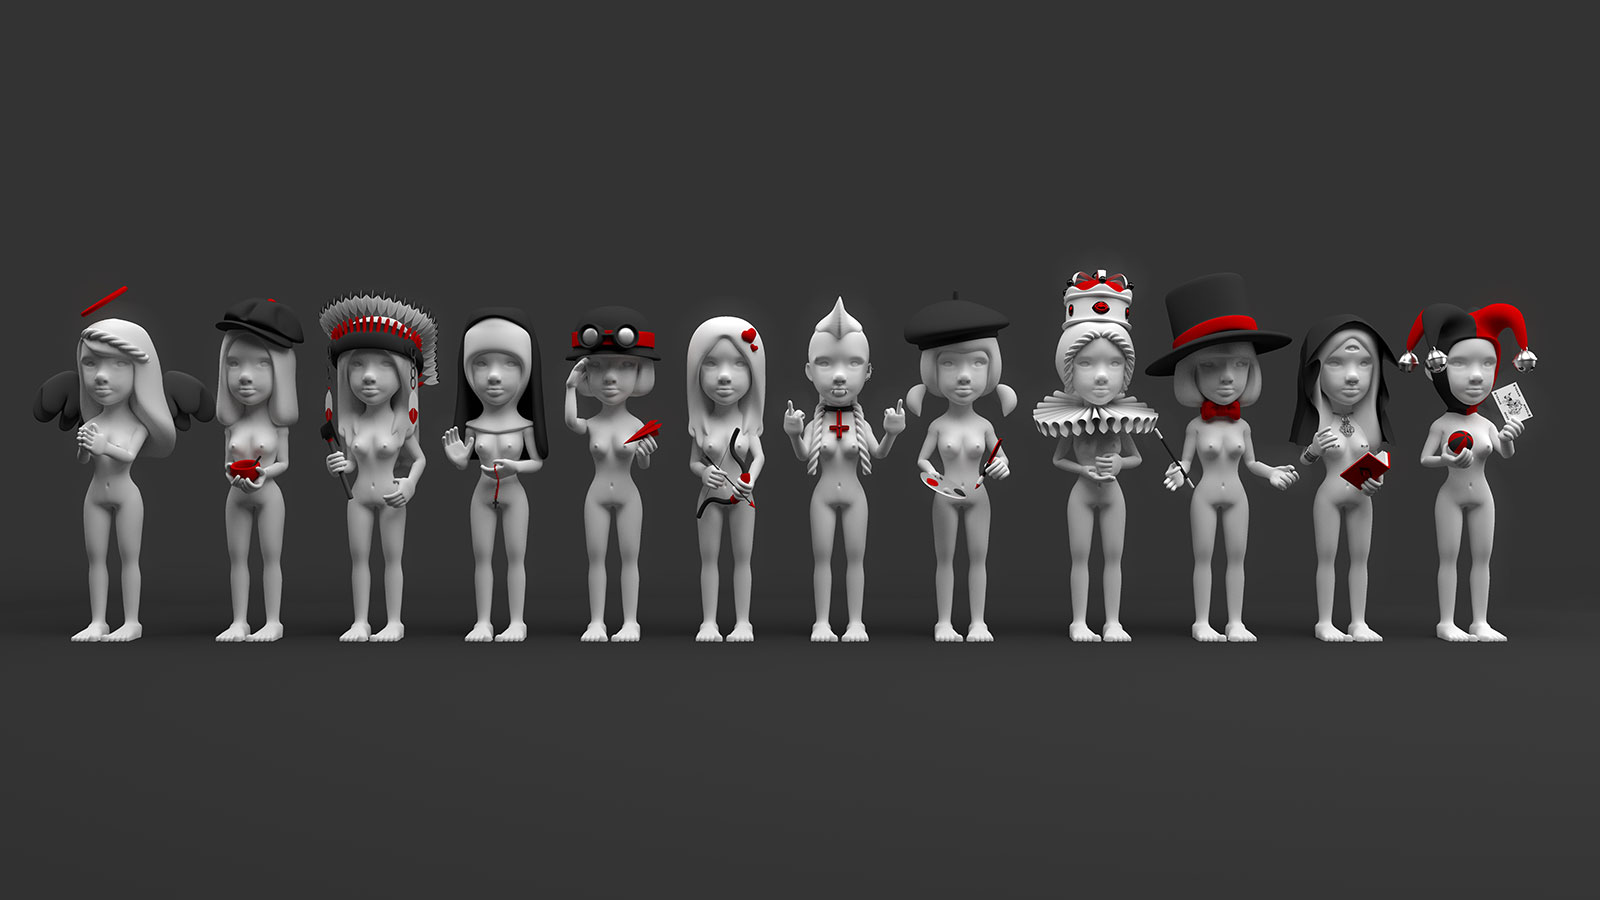 The complete 3D model set of Ava in her 12 archetype forms